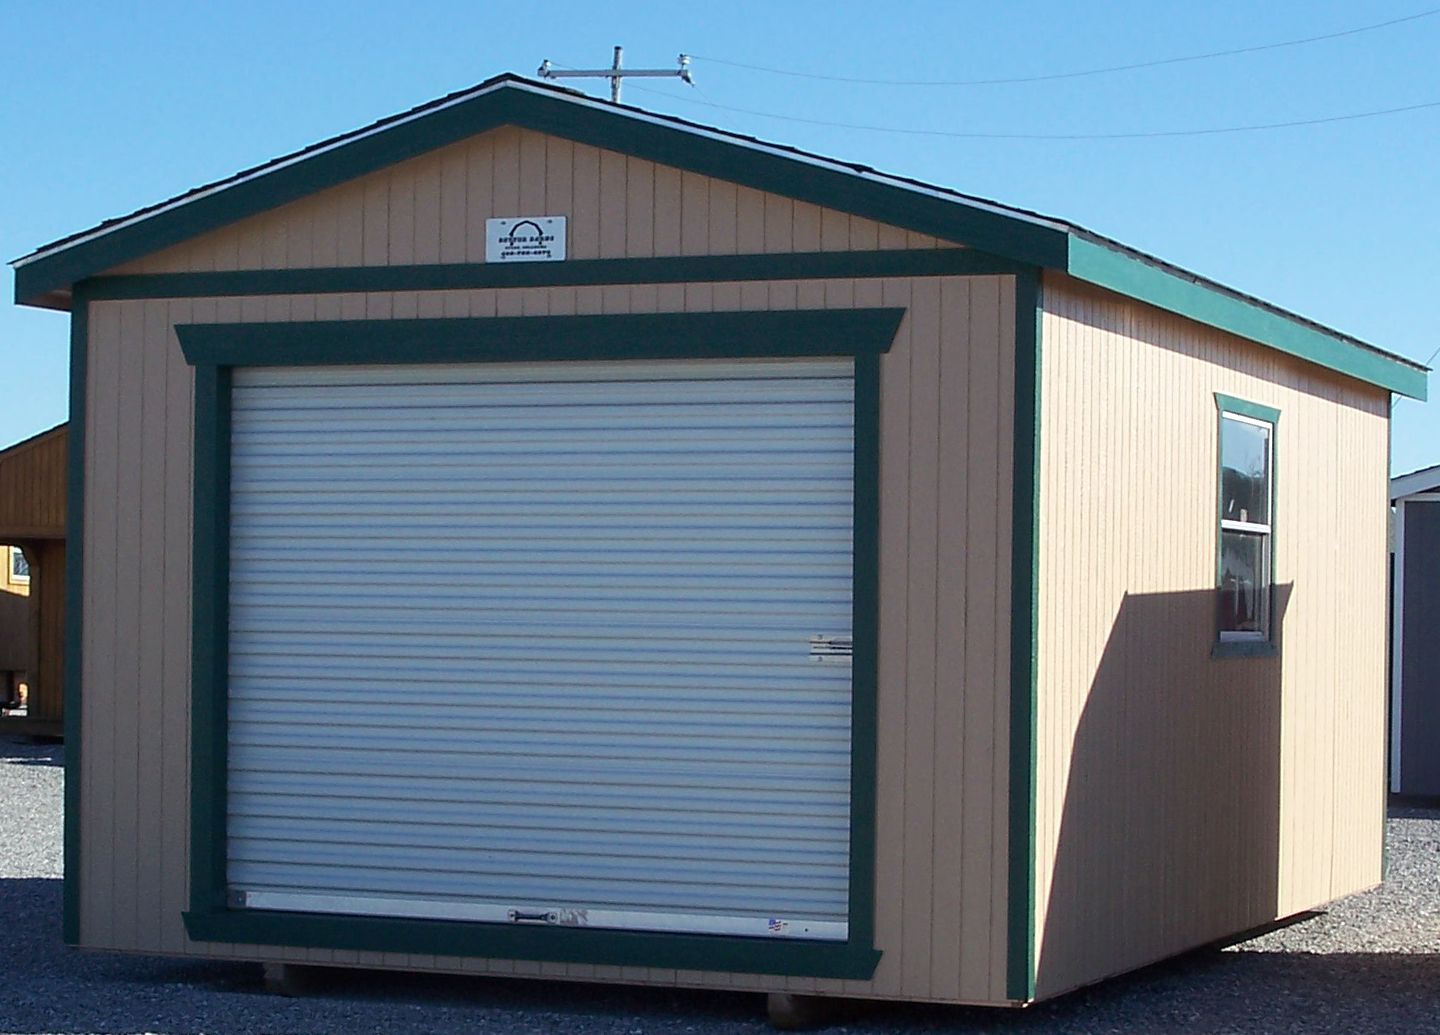 Gable Style Shed With A Roll Up Door Portable Buildings Shed Metal Buildings